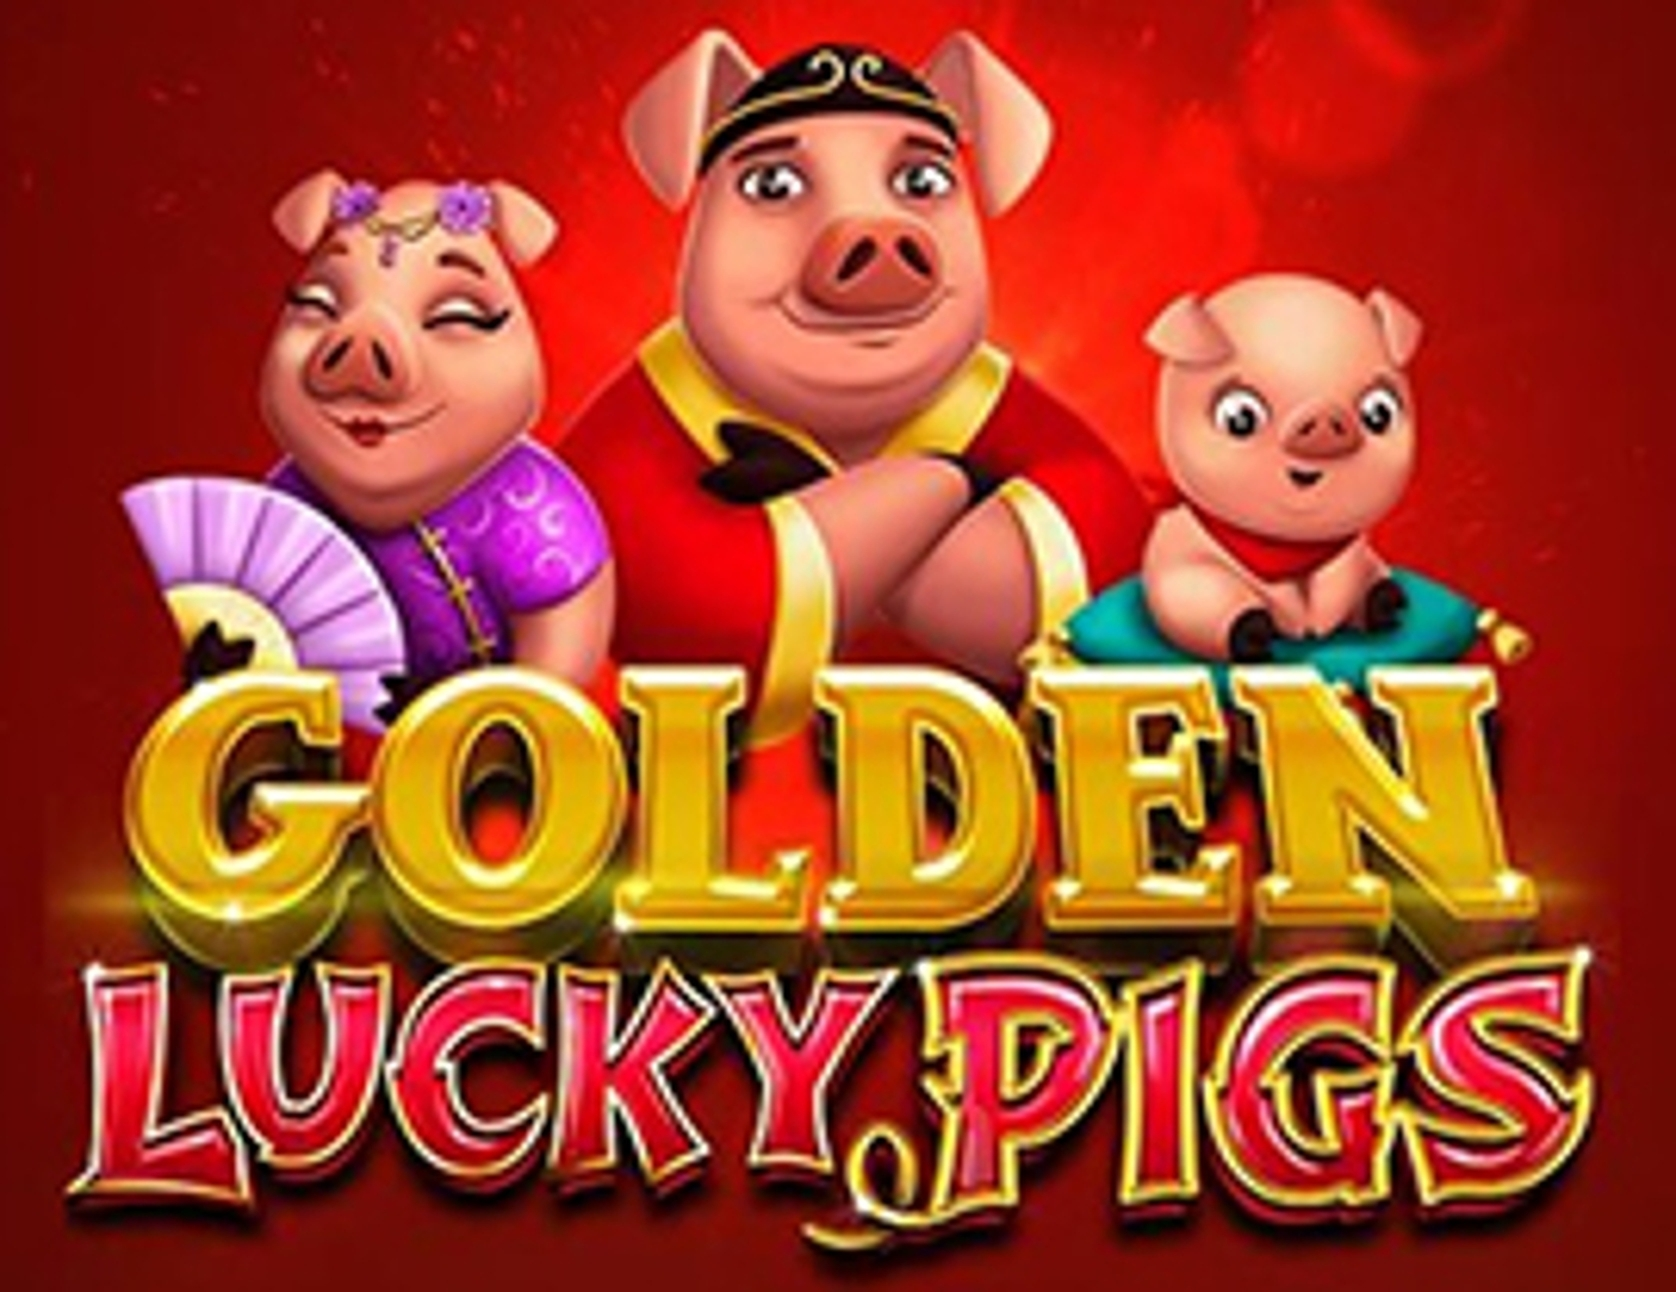 The Golden Lucky Pigs Online Slot Demo Game by Booming Games